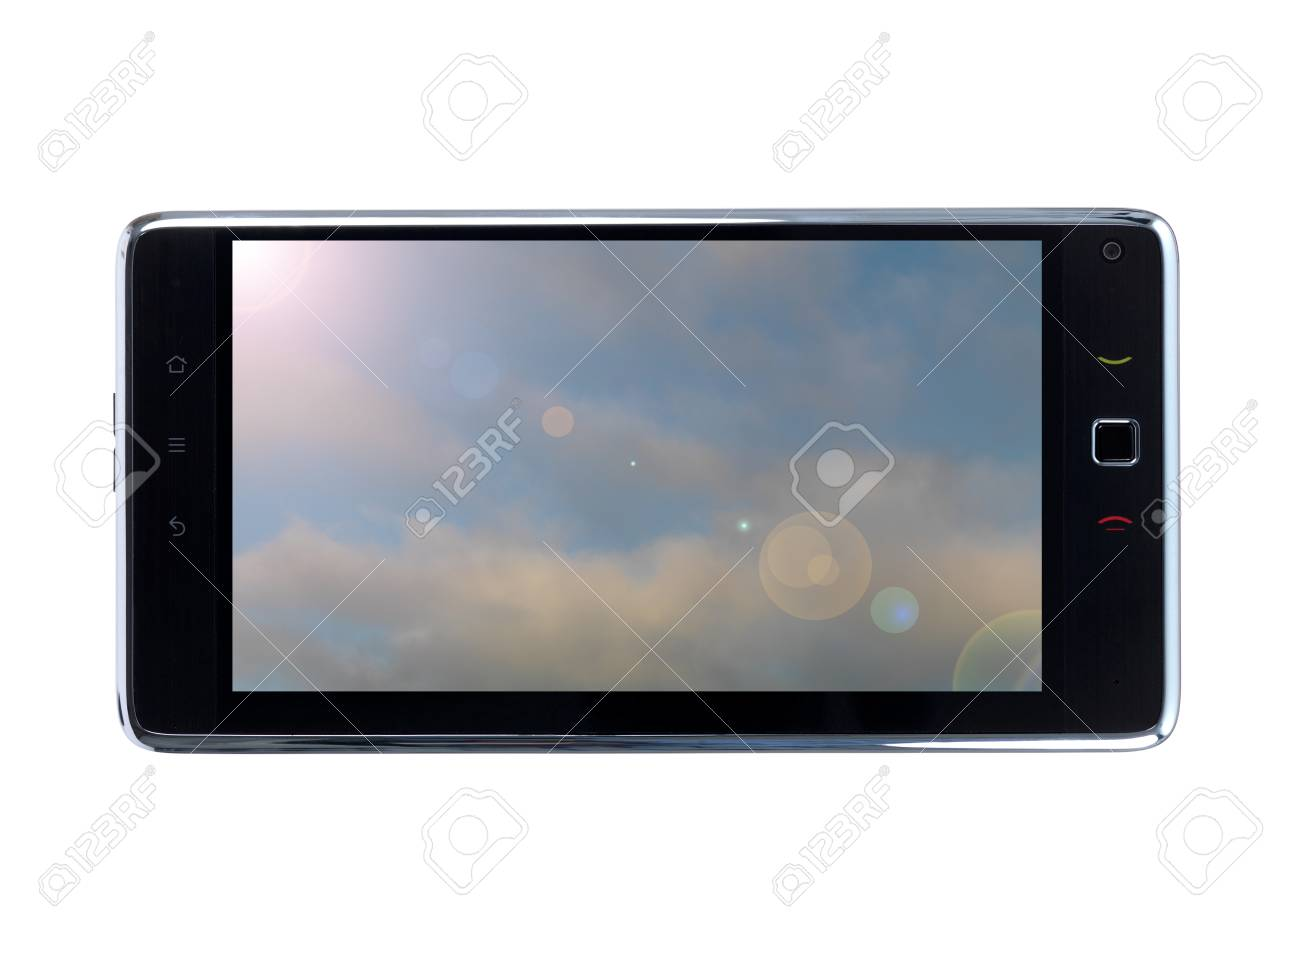 pc tablet isolated against a white background Stock Photo - 8446530